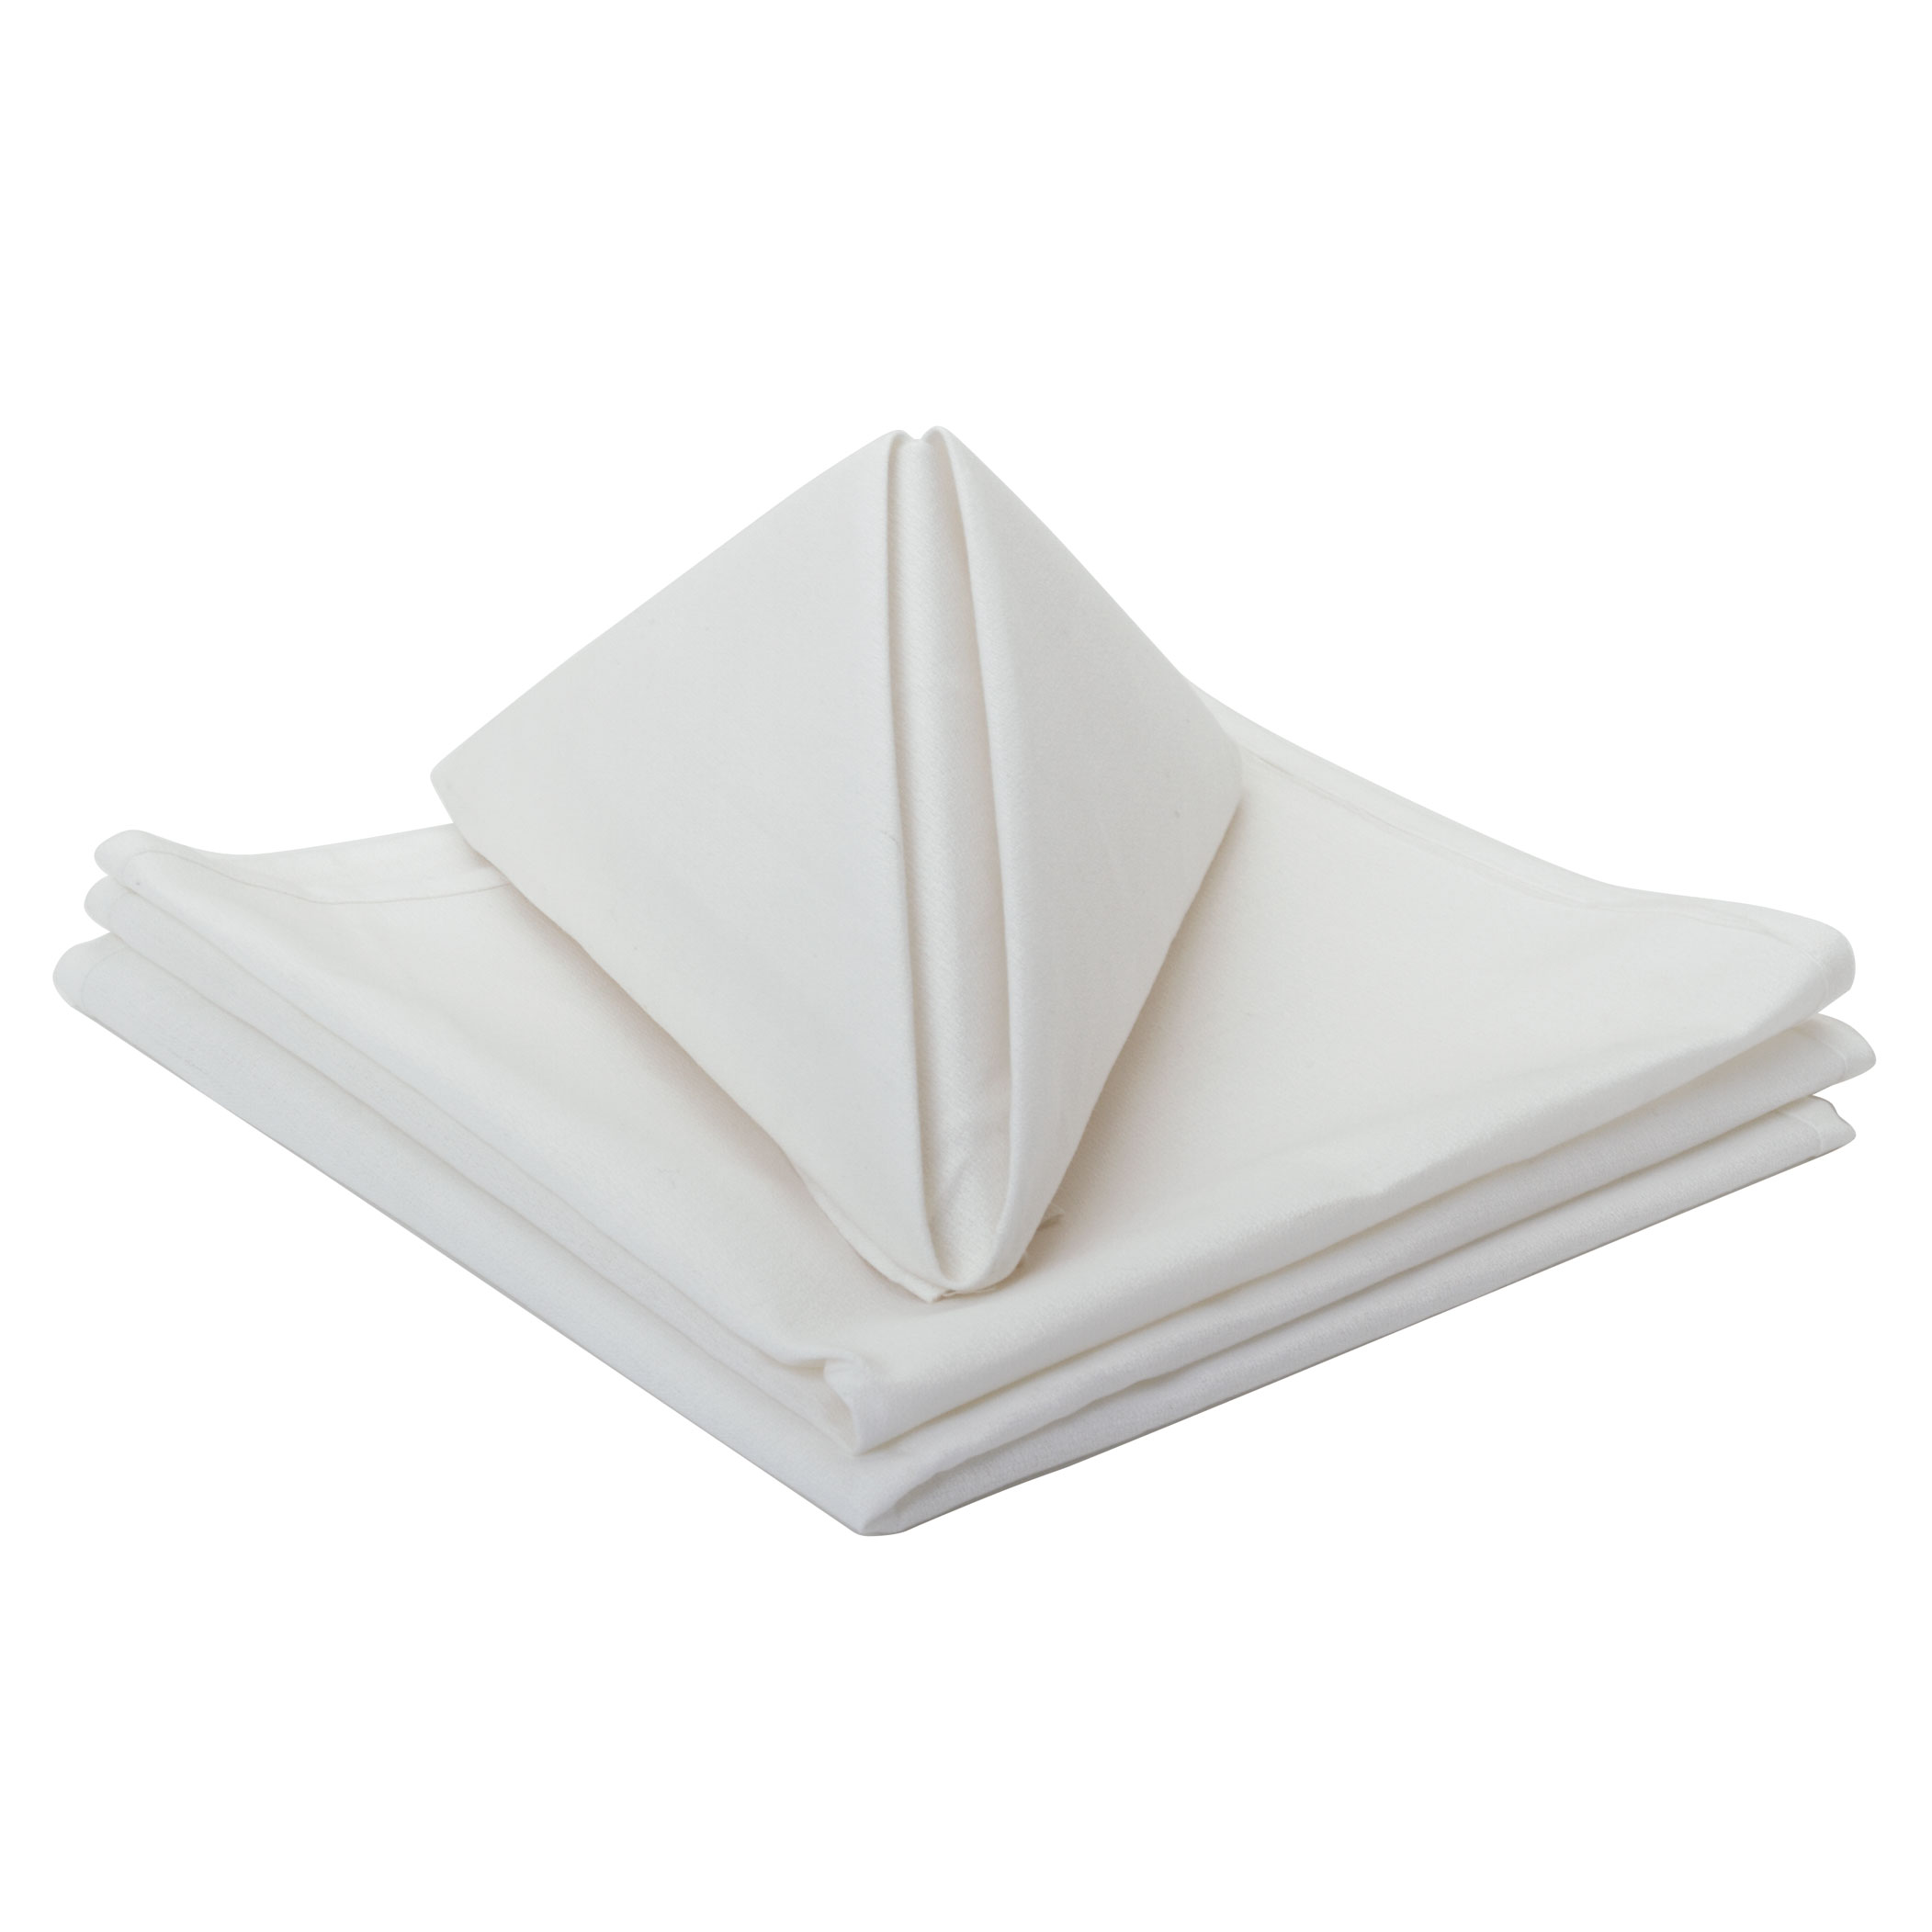 Royal Industries R 1101 napkin, linen